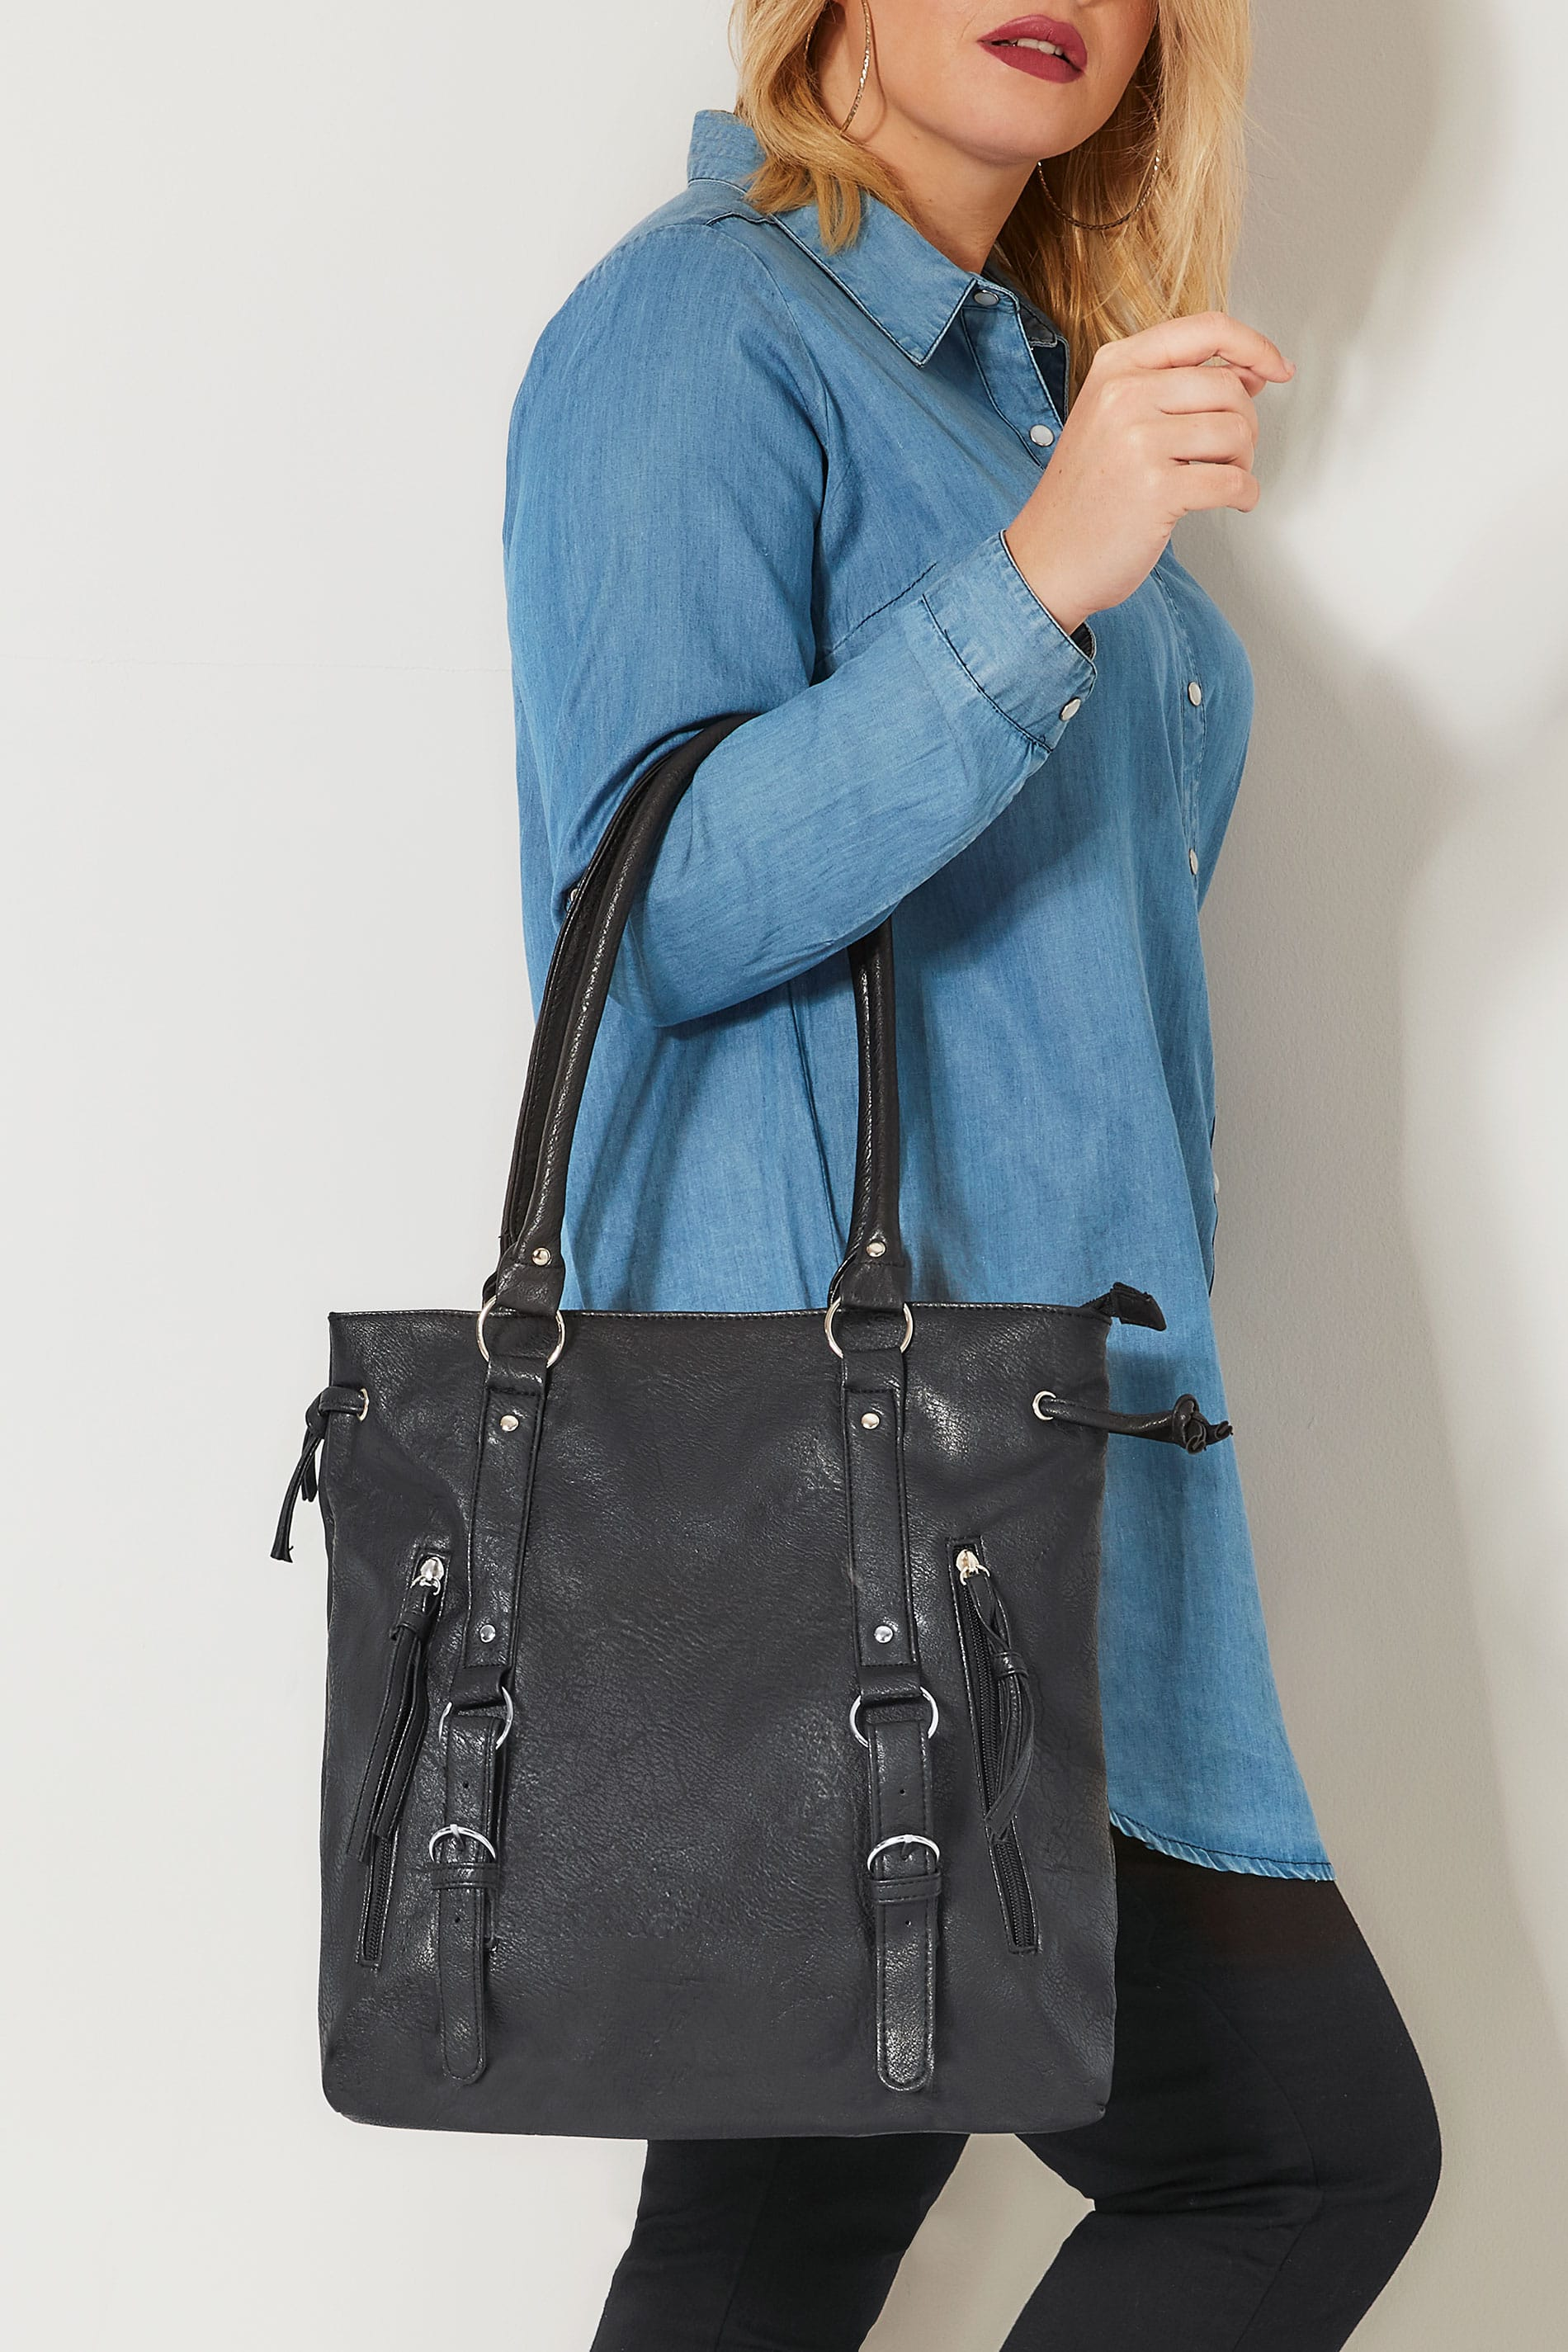 Black Shoulder Bag With Zip Detail